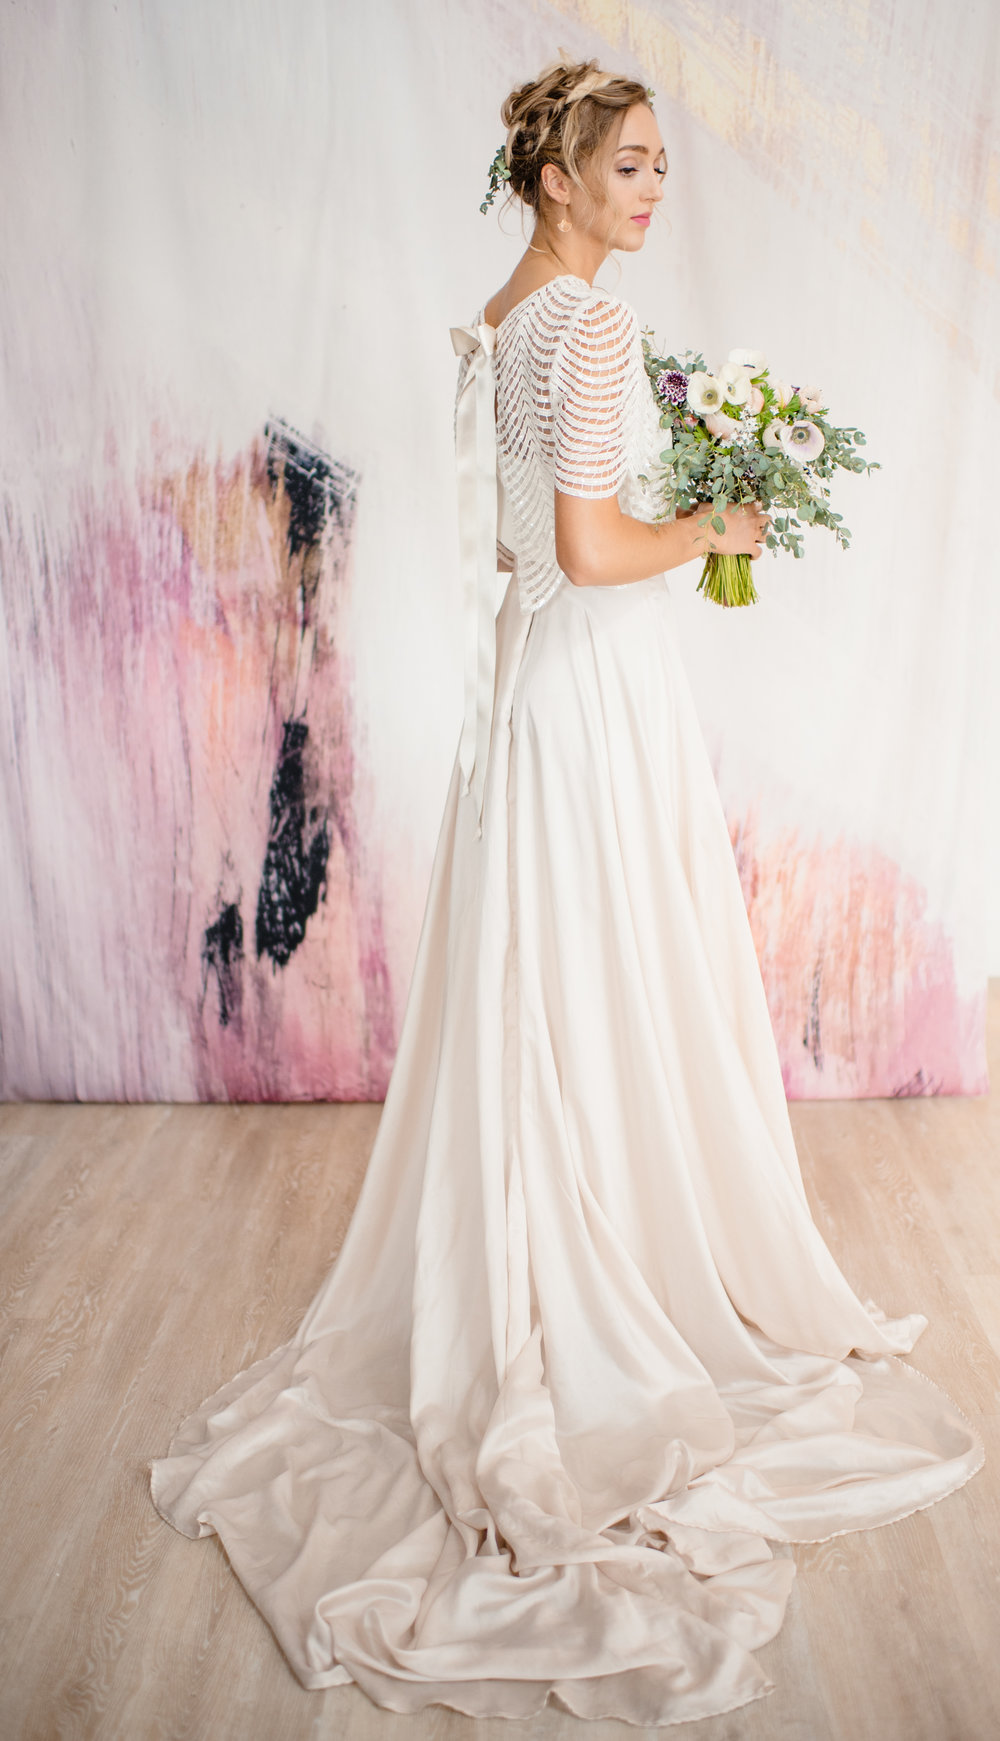 18_Amelia_Anne_Photography_RMB_Gown2018.jpg